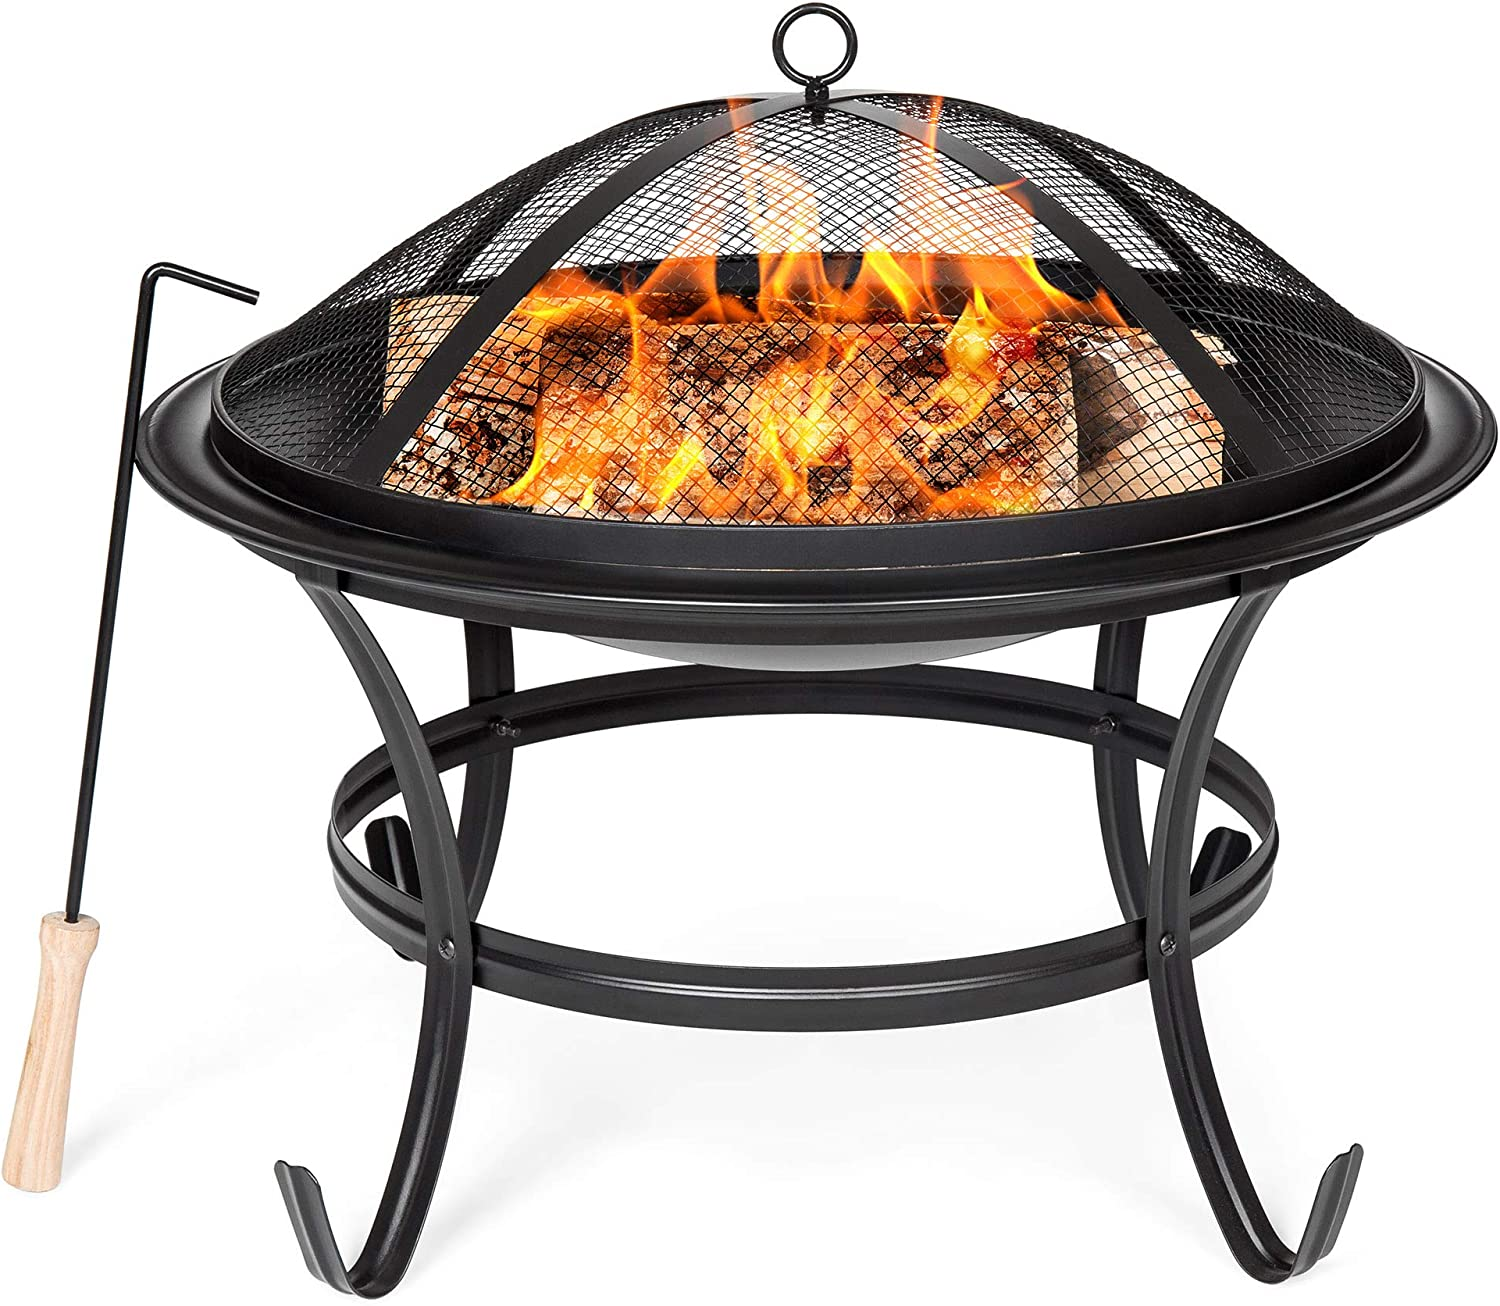 Best Choice Products 22in Steel Outdoor BBQ Grill Fire Pit Bowl w Screen Cover, Log Grate, Poker for Camping, Bonfire